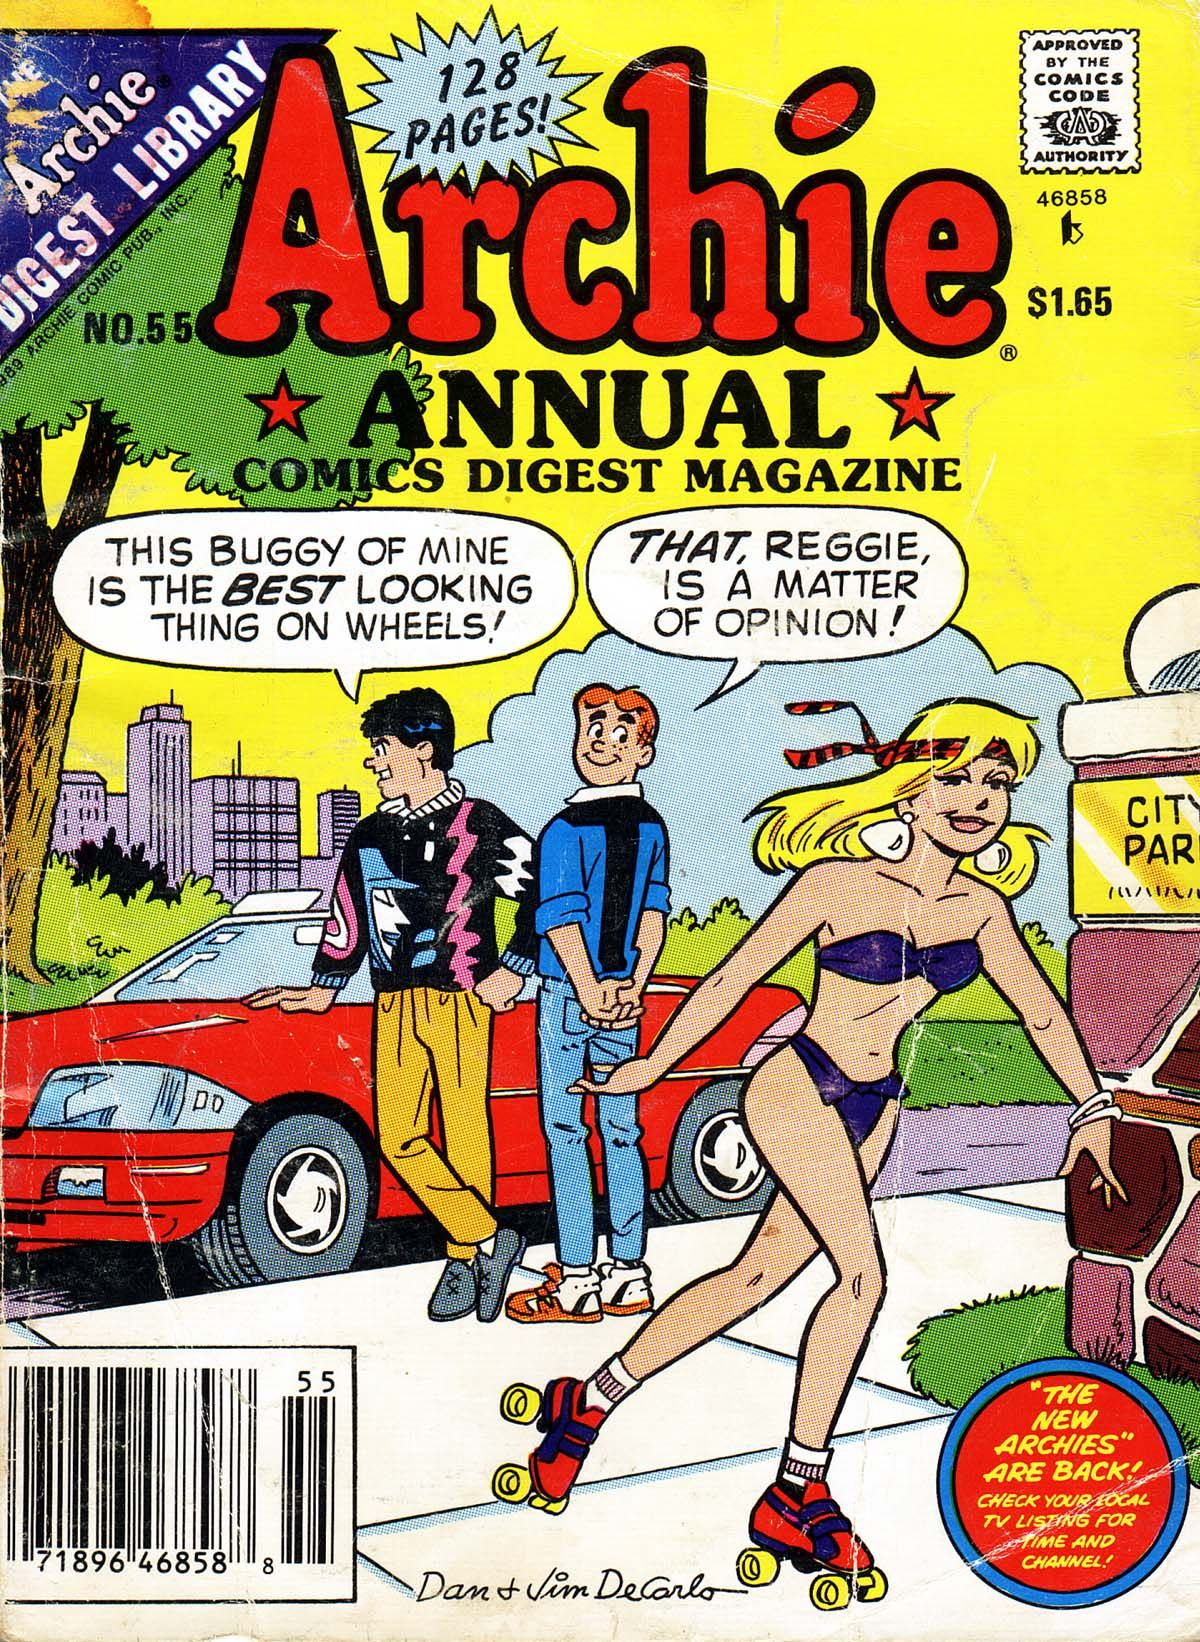 Sexy archie comics pictures